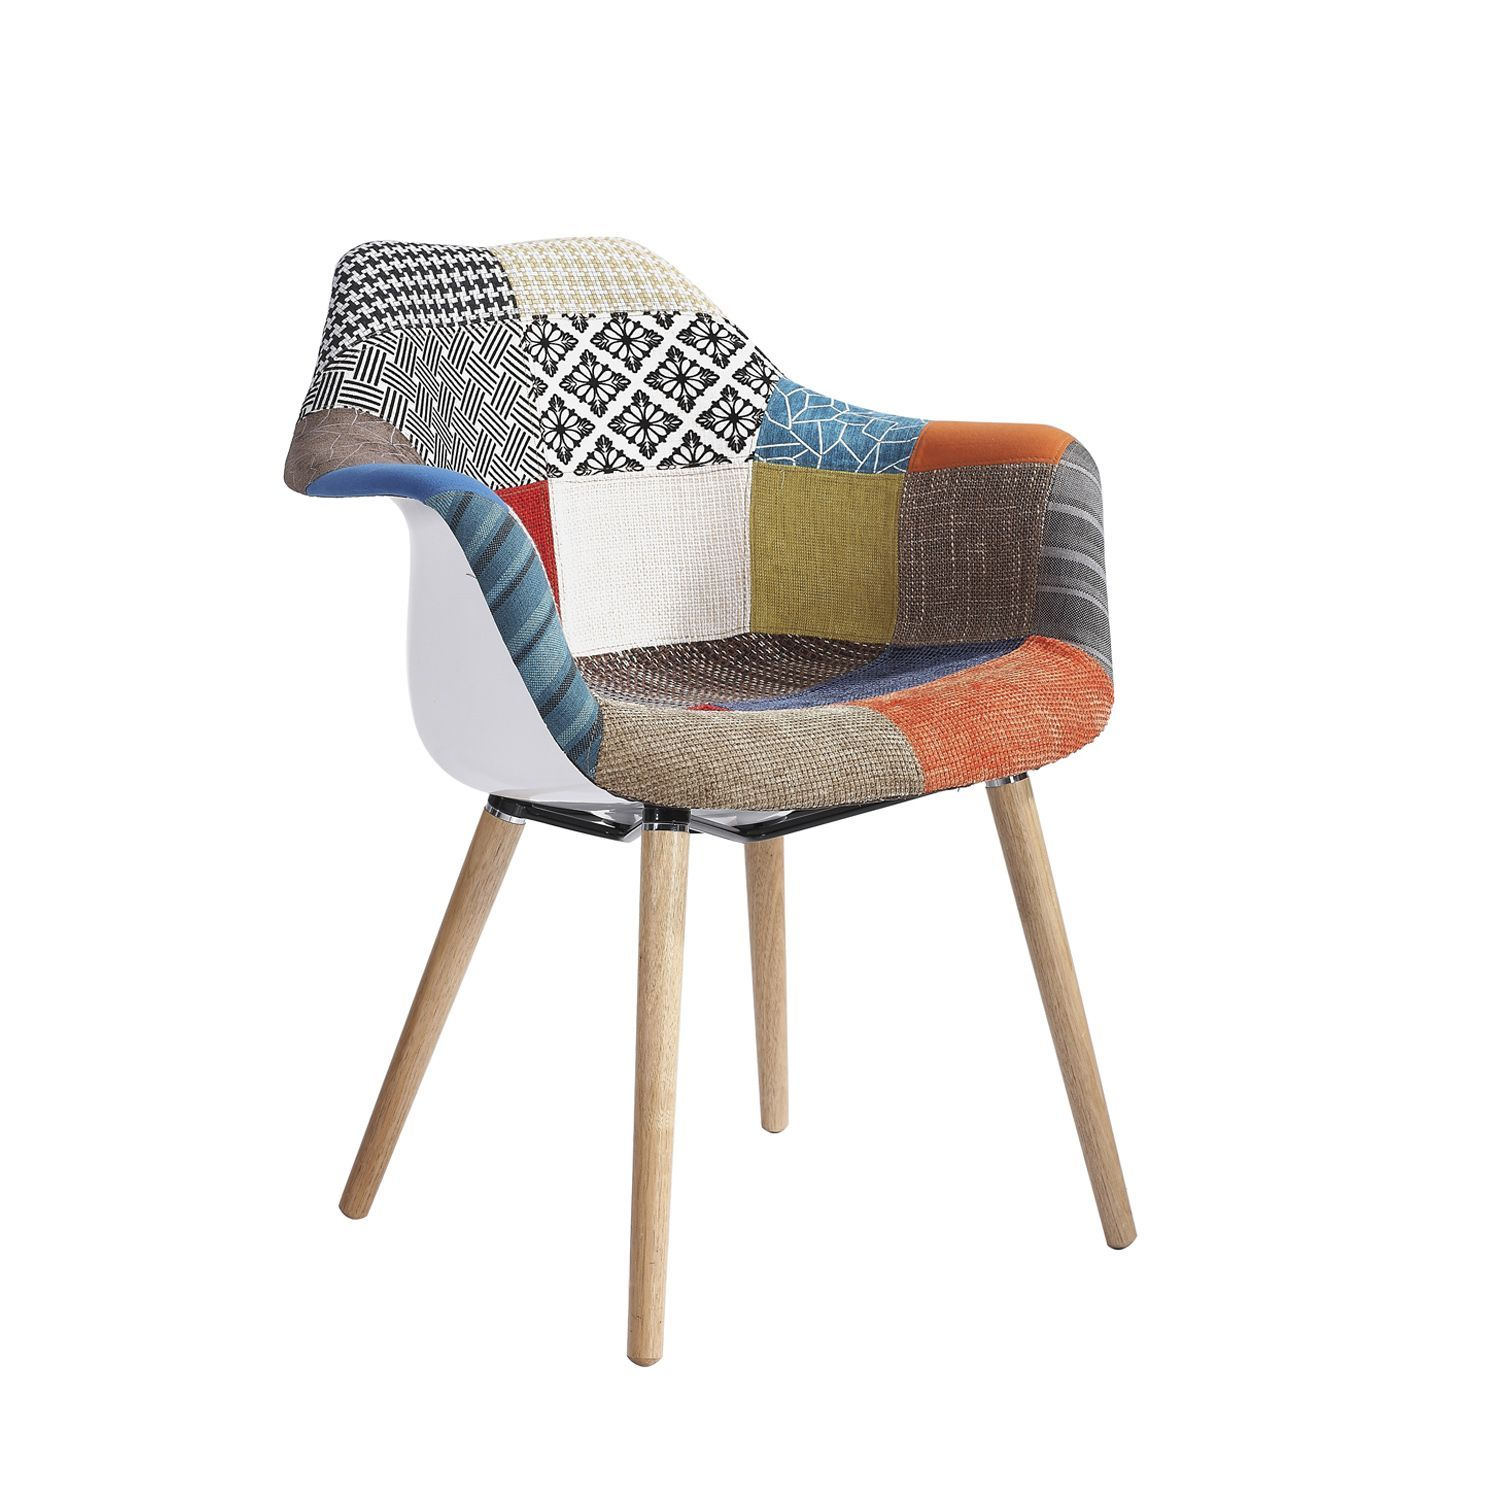 Sillas Tower Silla Tower Wood Arms Patchwork Edition Sillas Icono Del Diseño